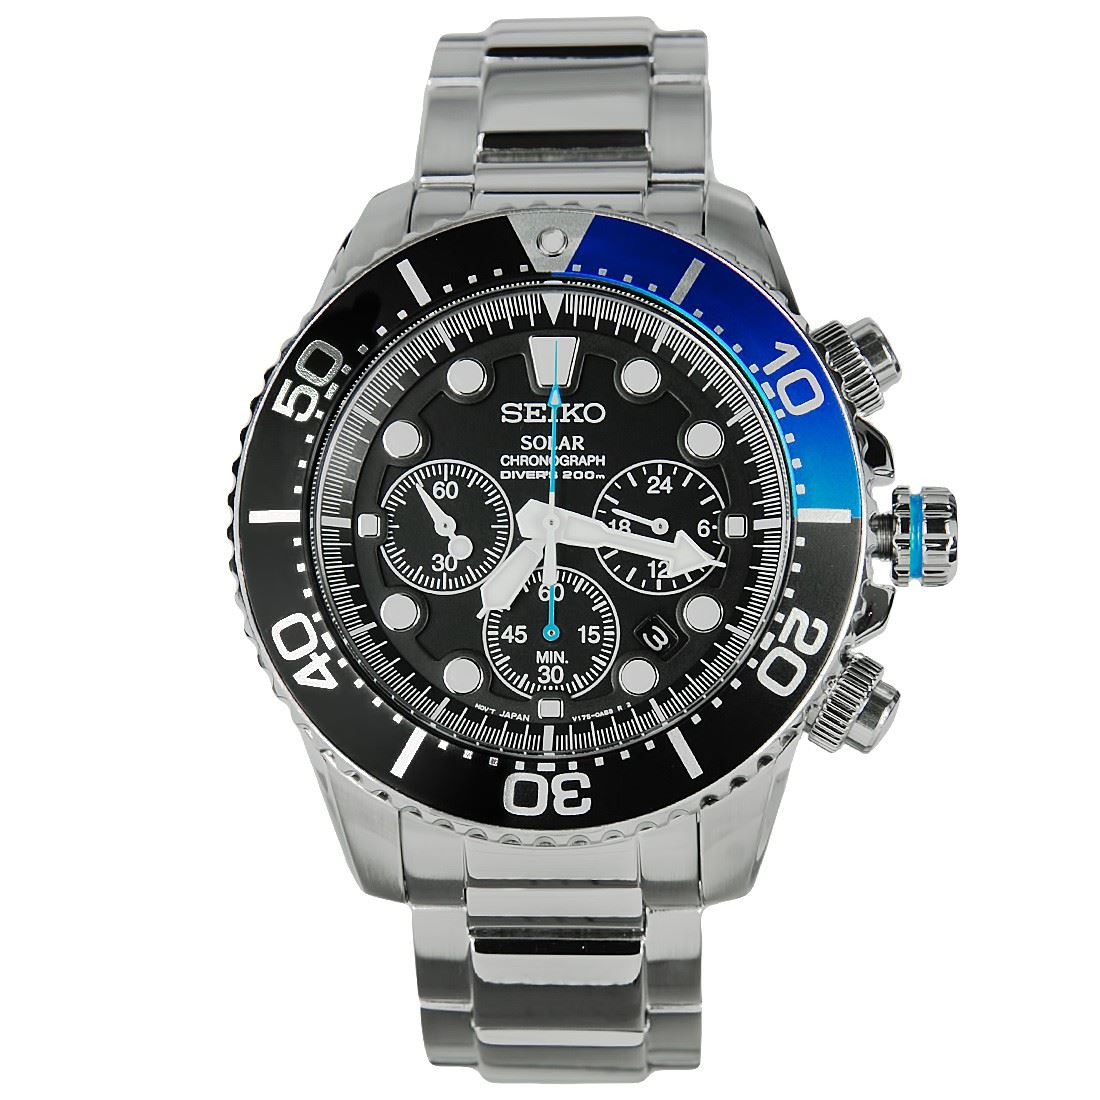 Seiko solar chronograph ssc019p1 ssc013p1 ssc017p1 male analog sports watches ebay for Solar watches